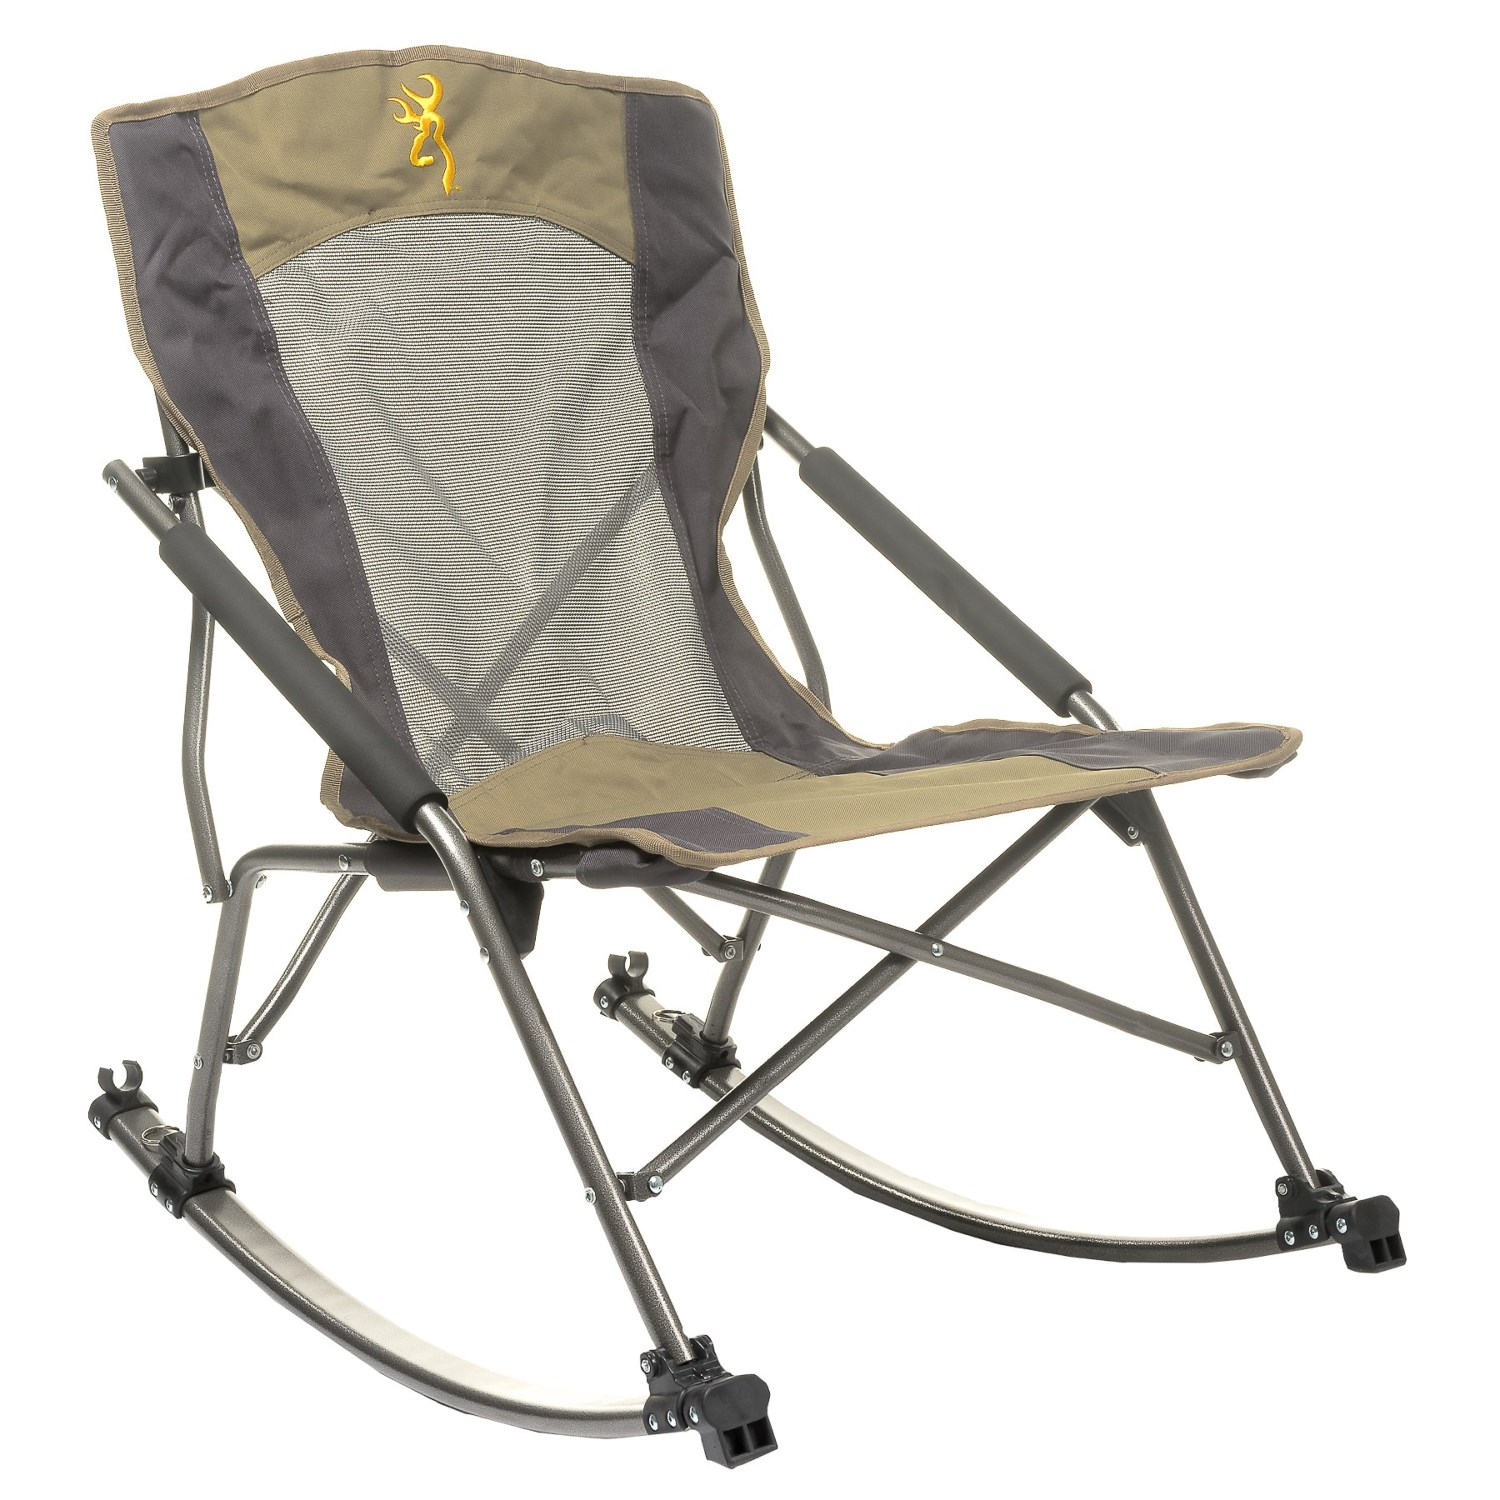 Beautiful Most fortable Folding Chair New